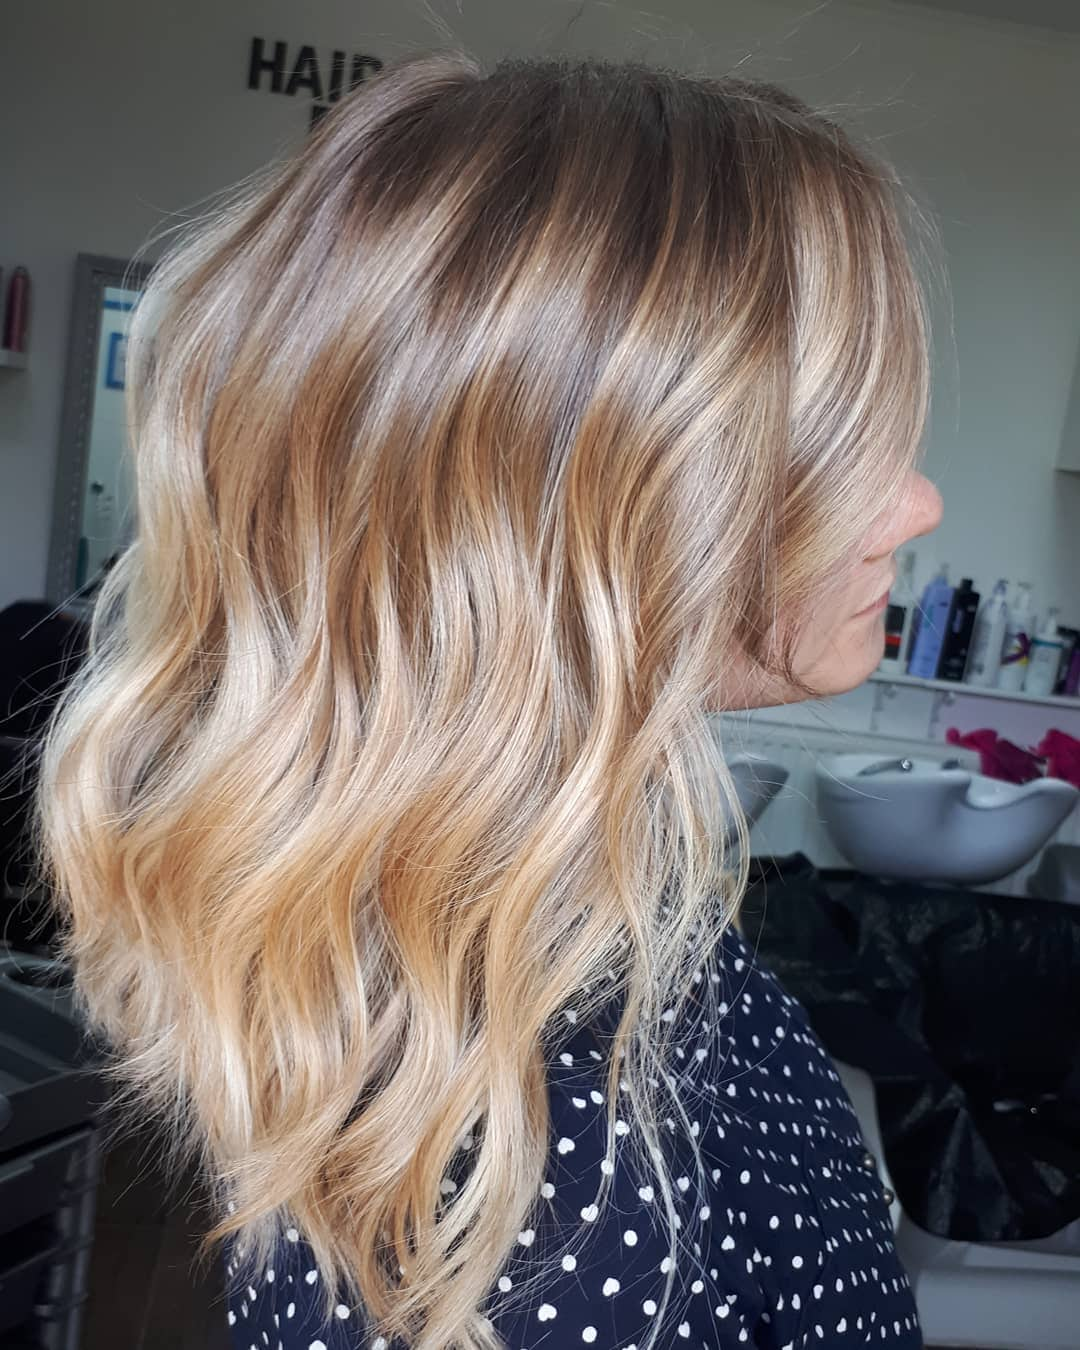 30 Best Honey Blonde Hair Colours For Women In 2020 All Things Hair